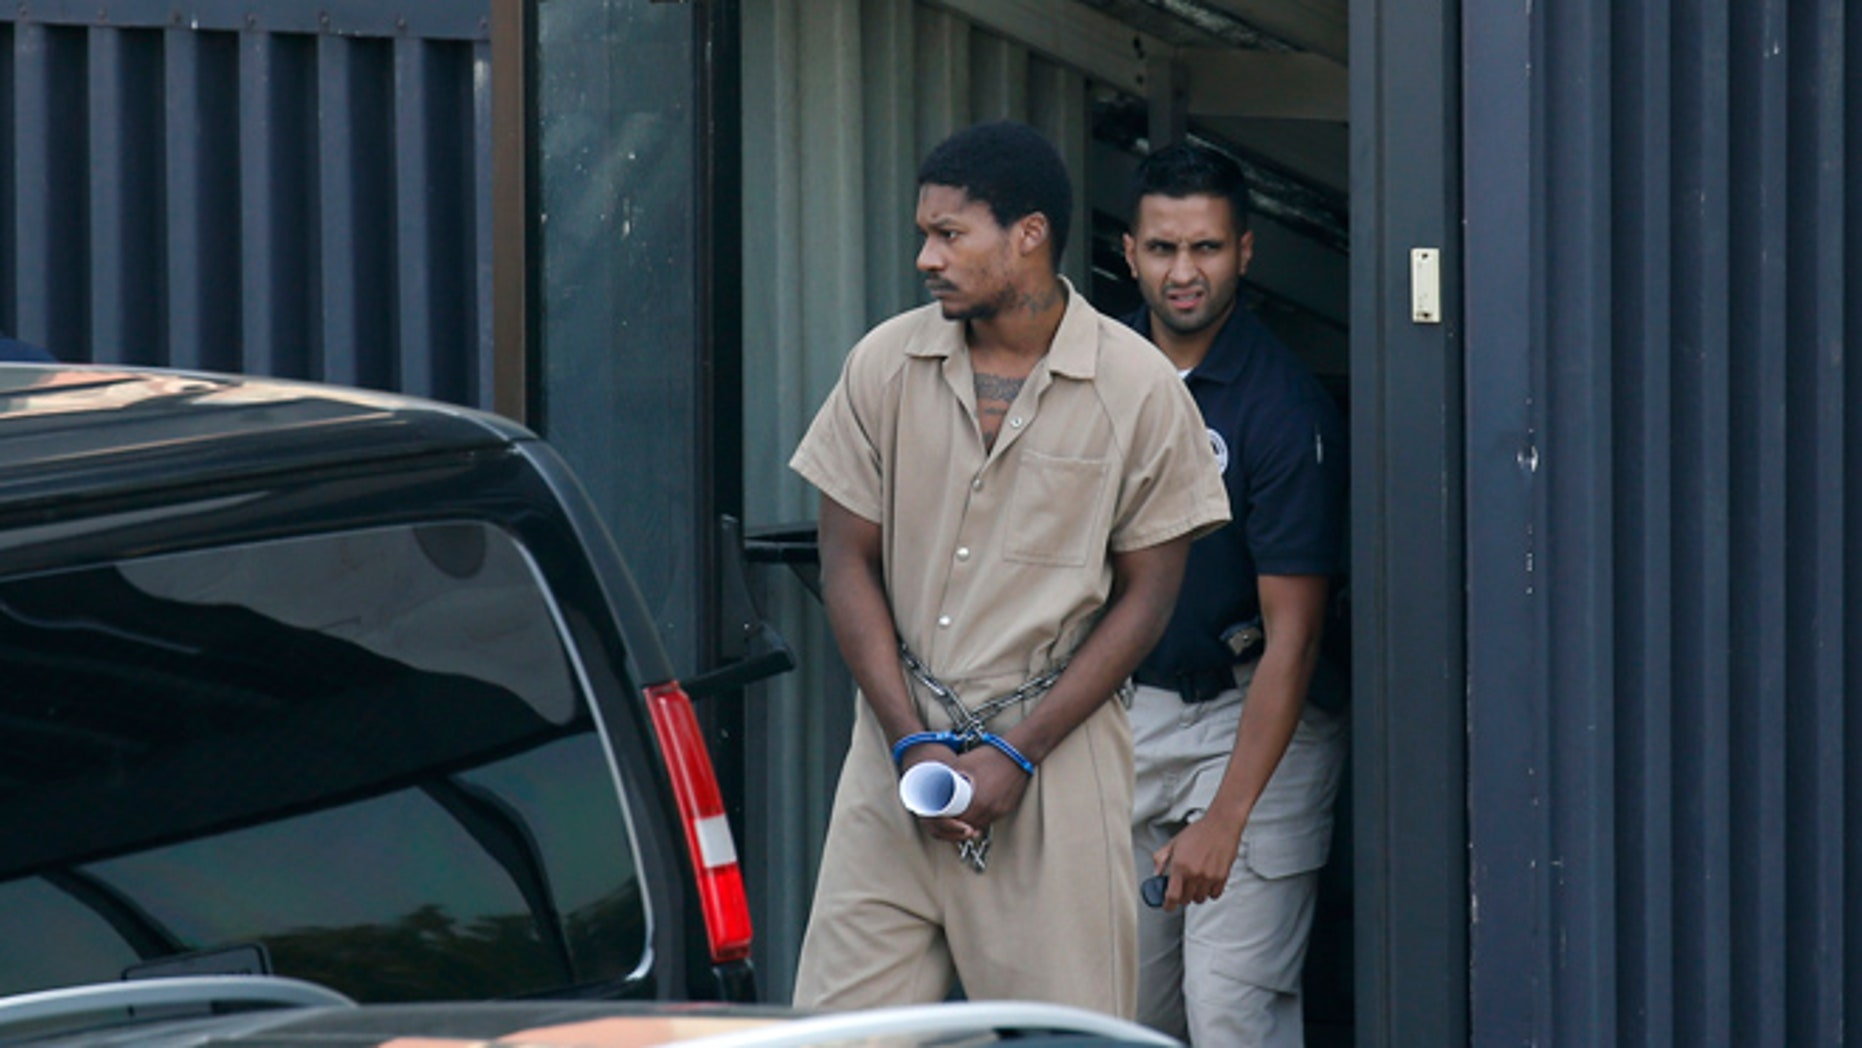 Emanuel Lutchman is transported out of a Federal Building on Thursday, Aug. 11, 2016, in Rochester, N.Y. Lutchman pleaded guilty Thursday to conspiracy to support the Islamic State.